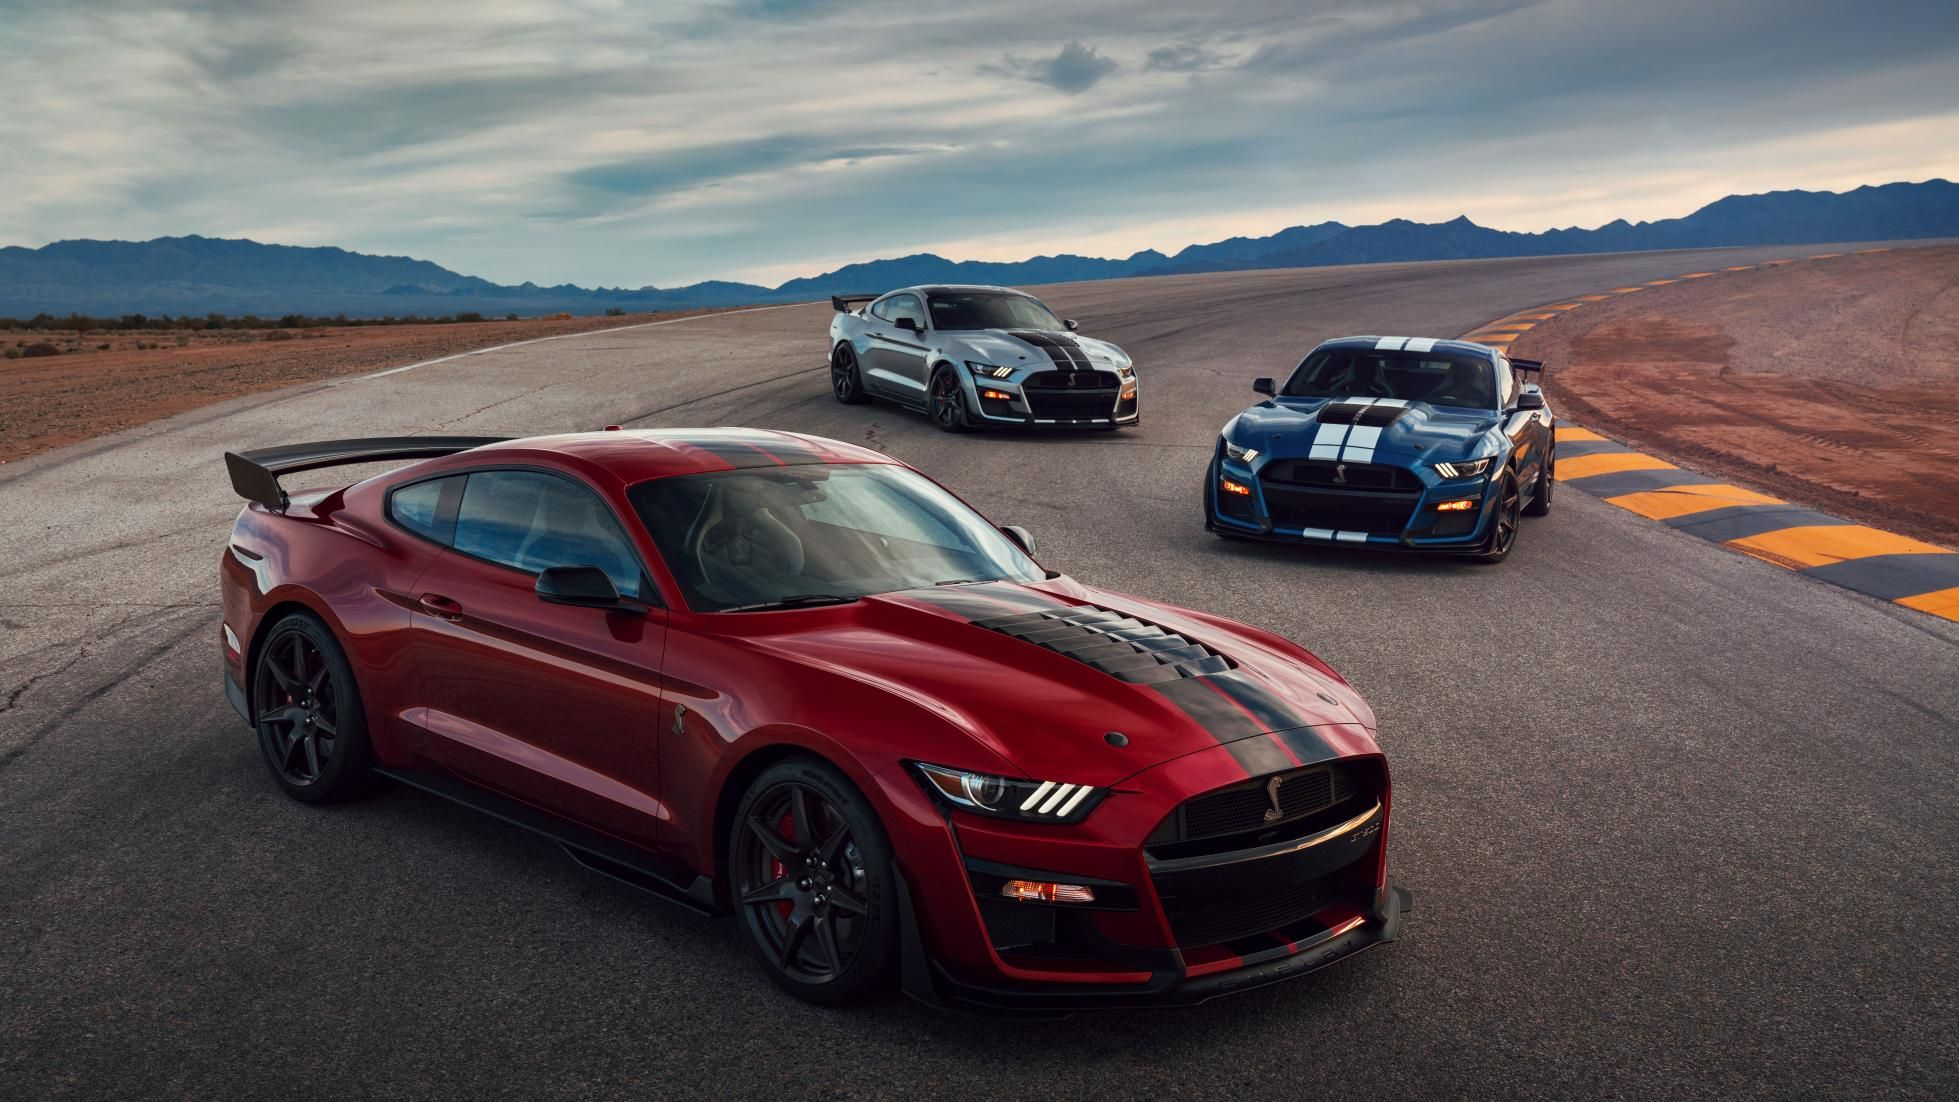 This is the 700bhp ford mustang shelby gt500 top gear